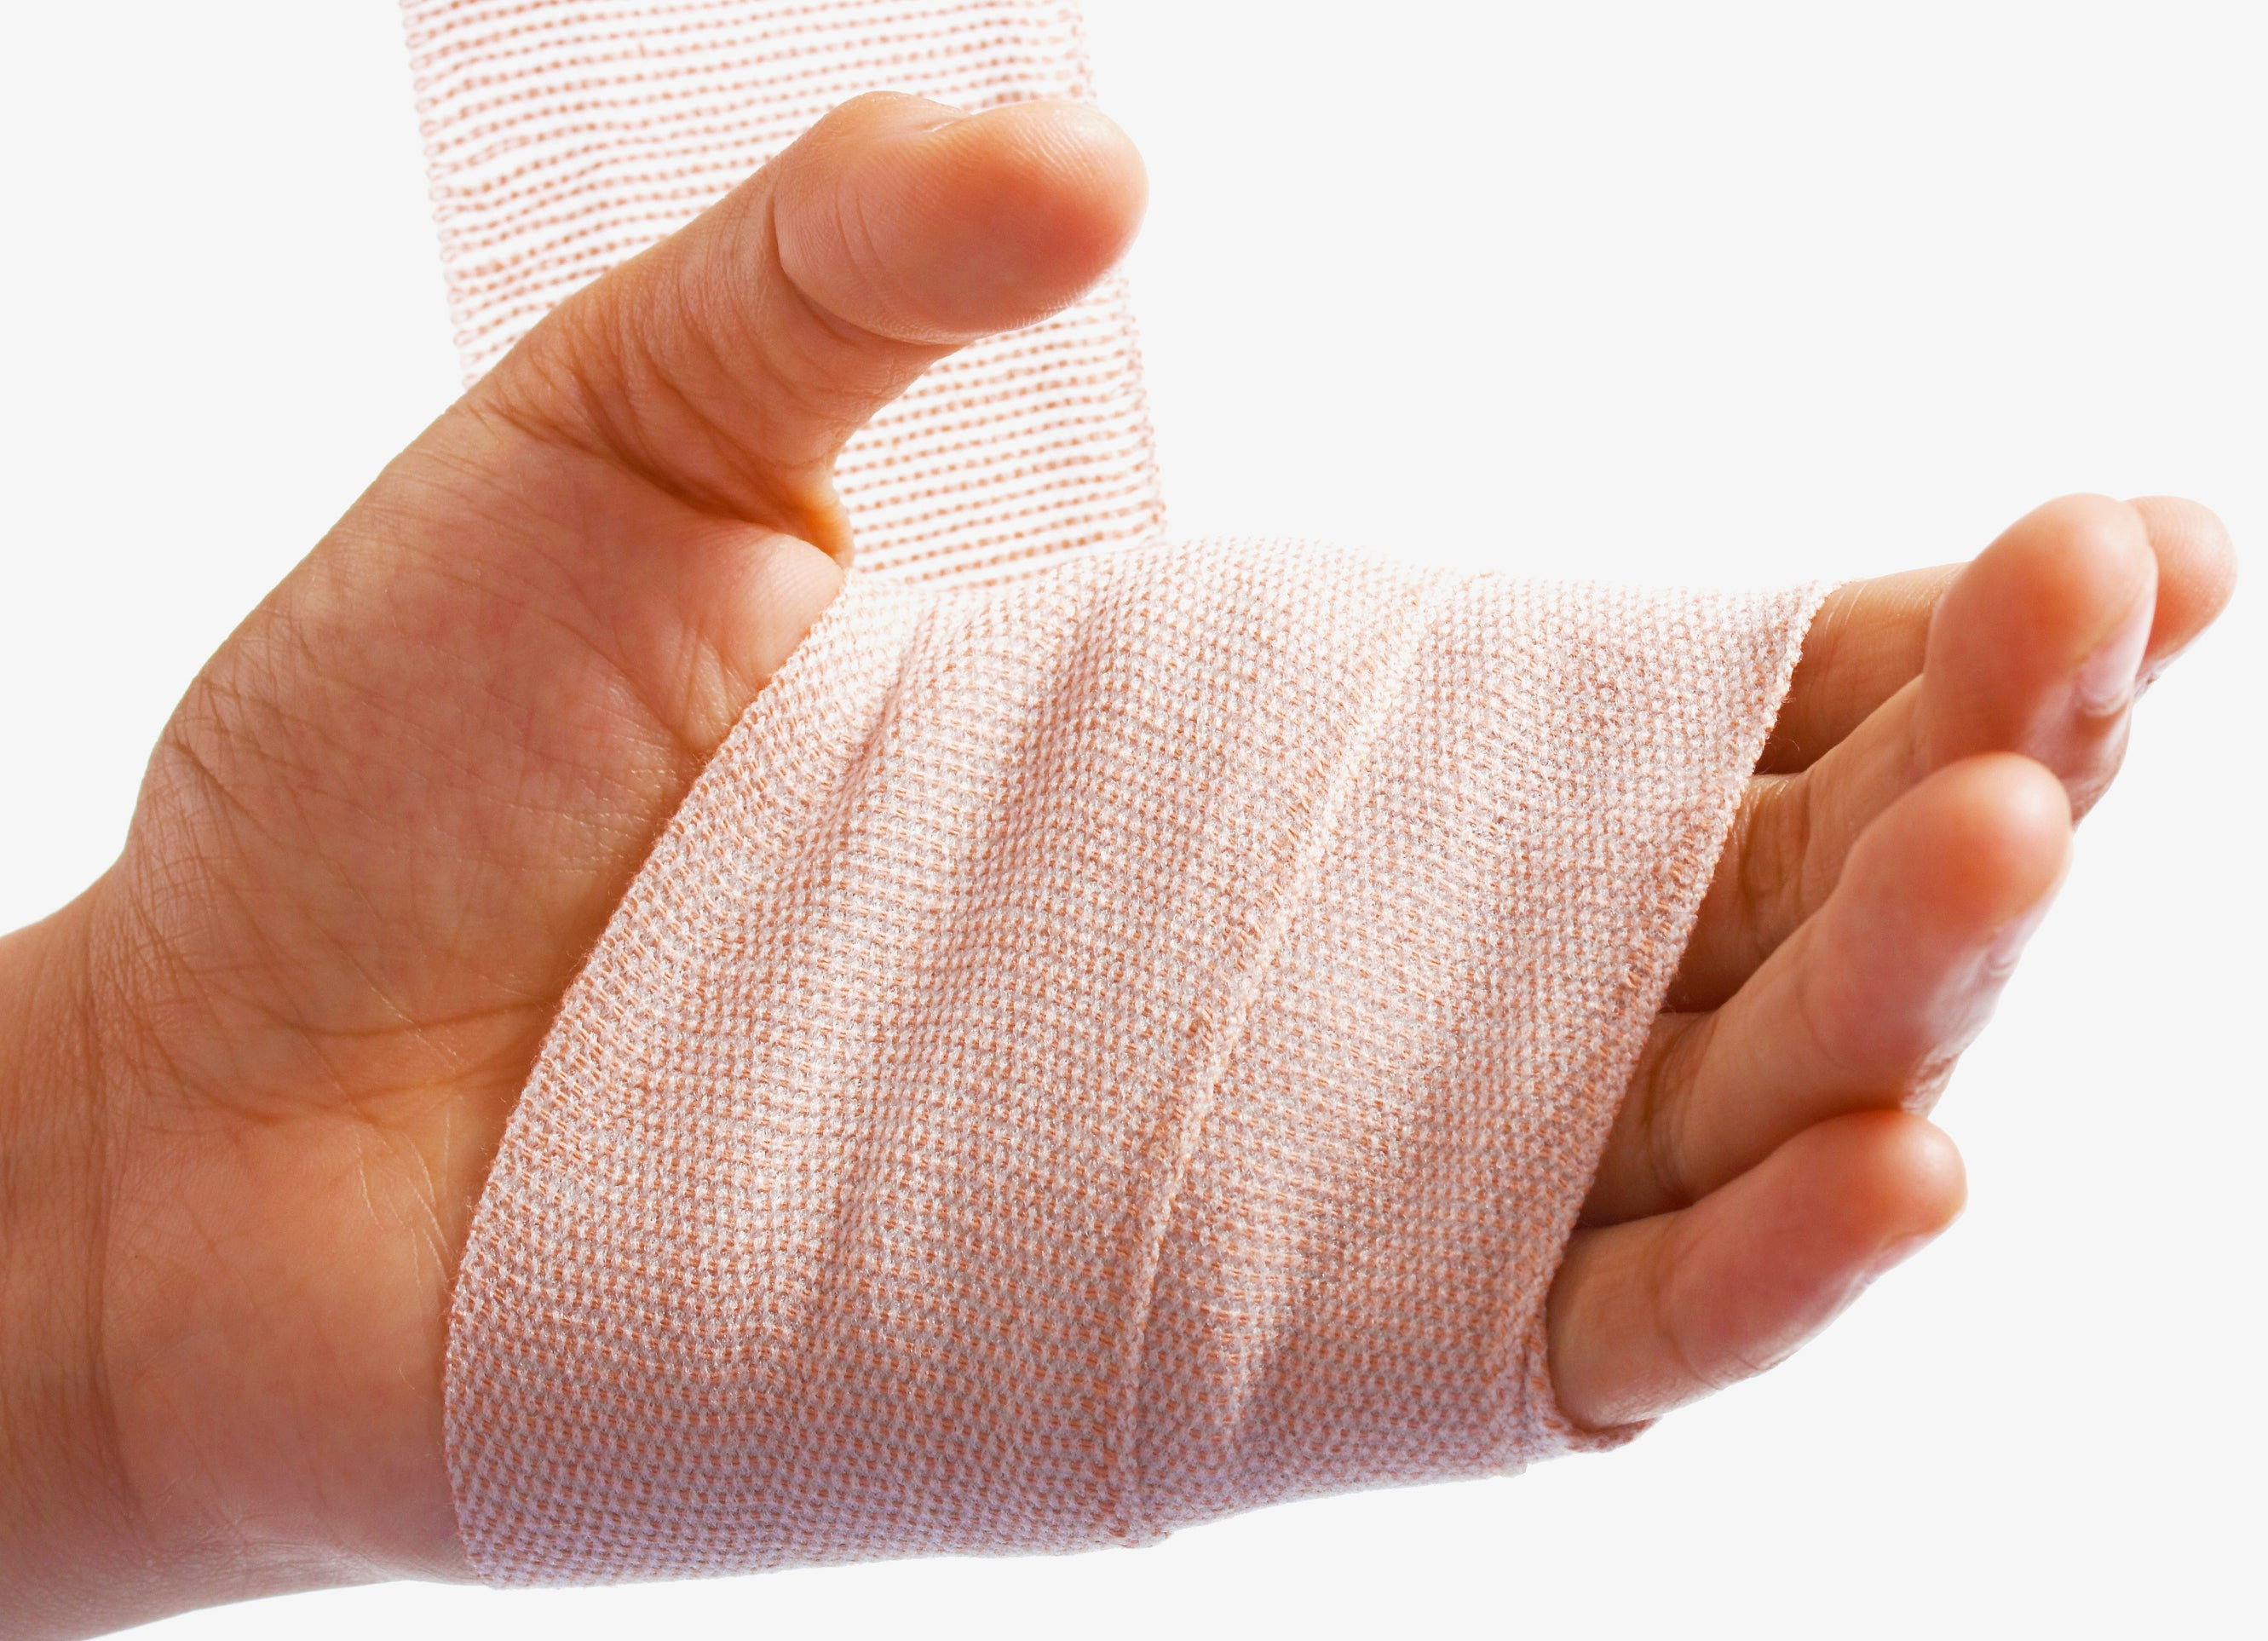 sprained hand with a bandage